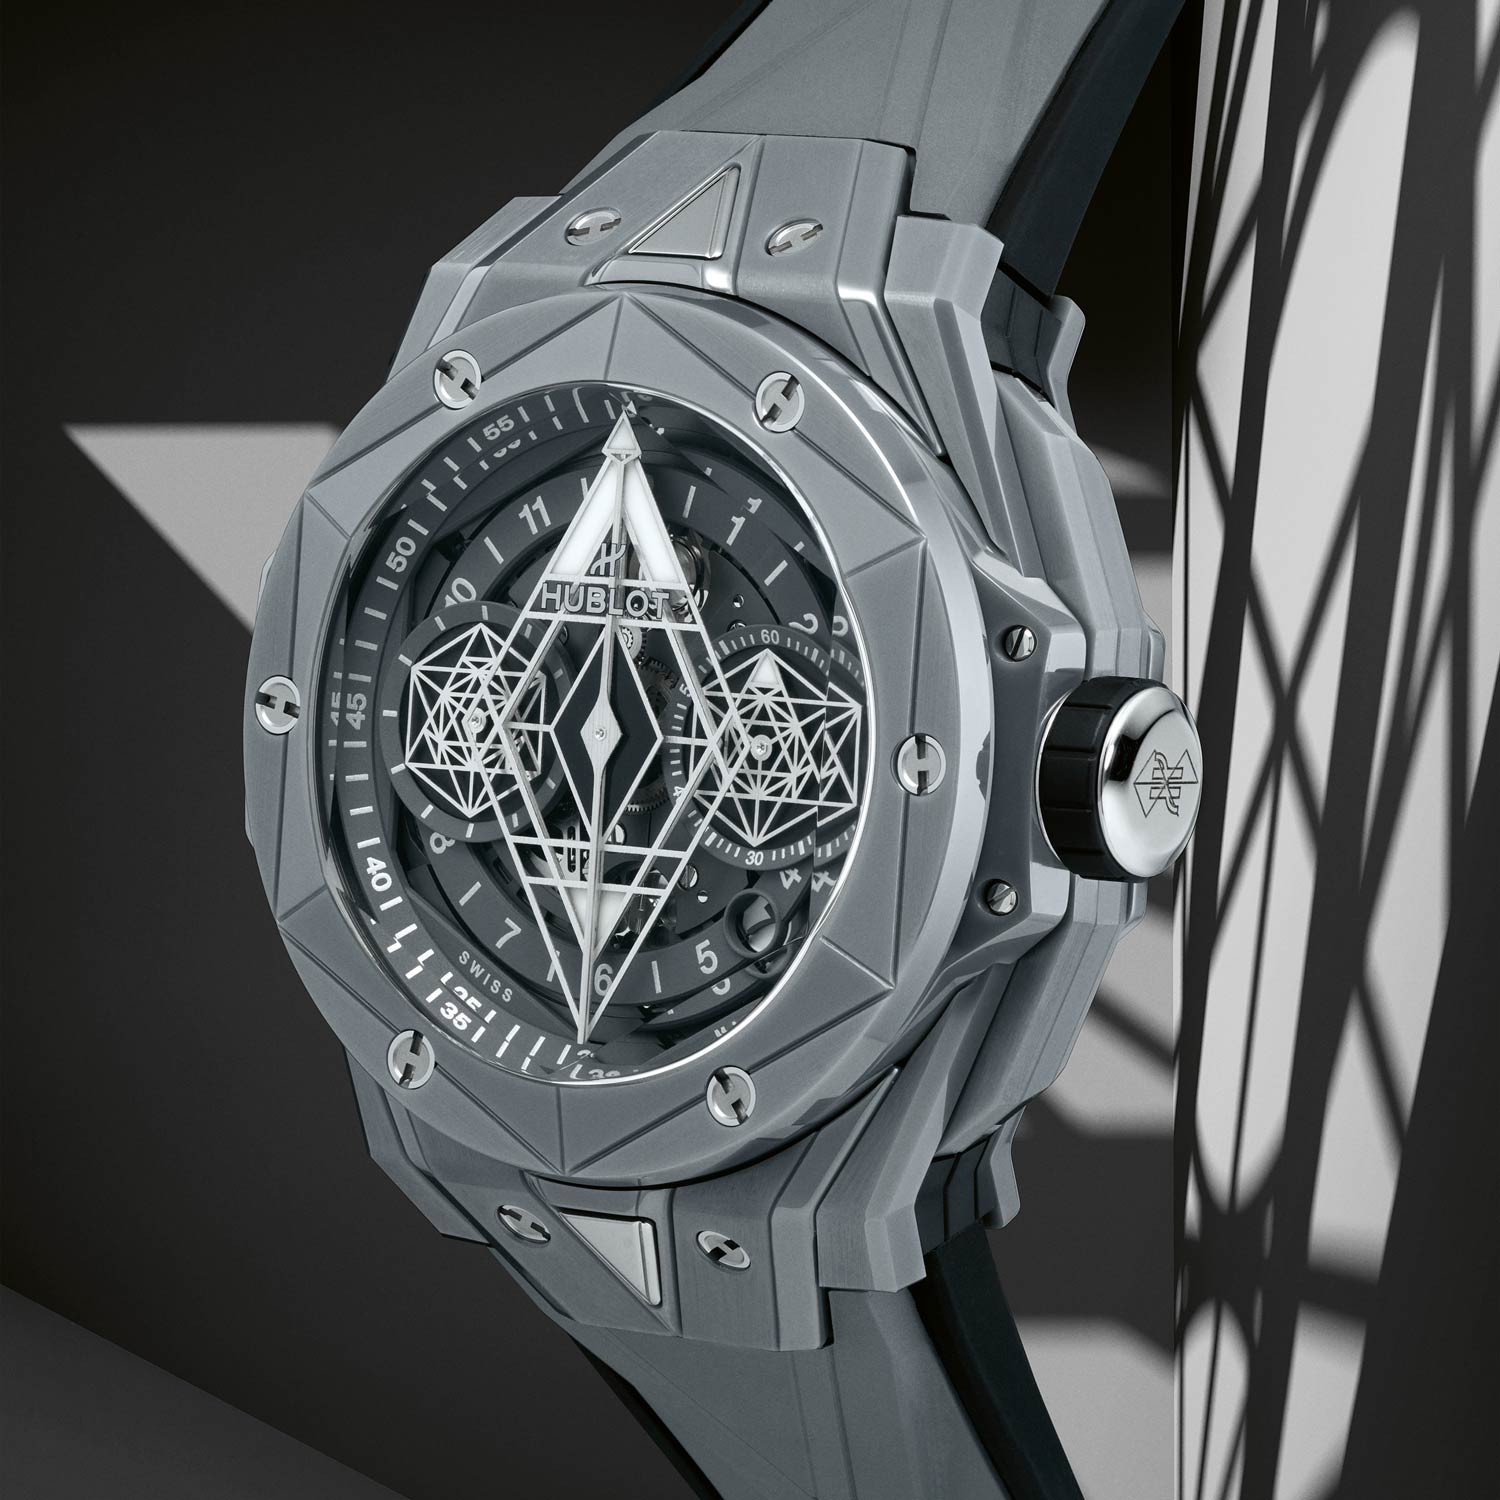 Multi-dimensional case with sharp angles and facets cut in the shape of diamonds